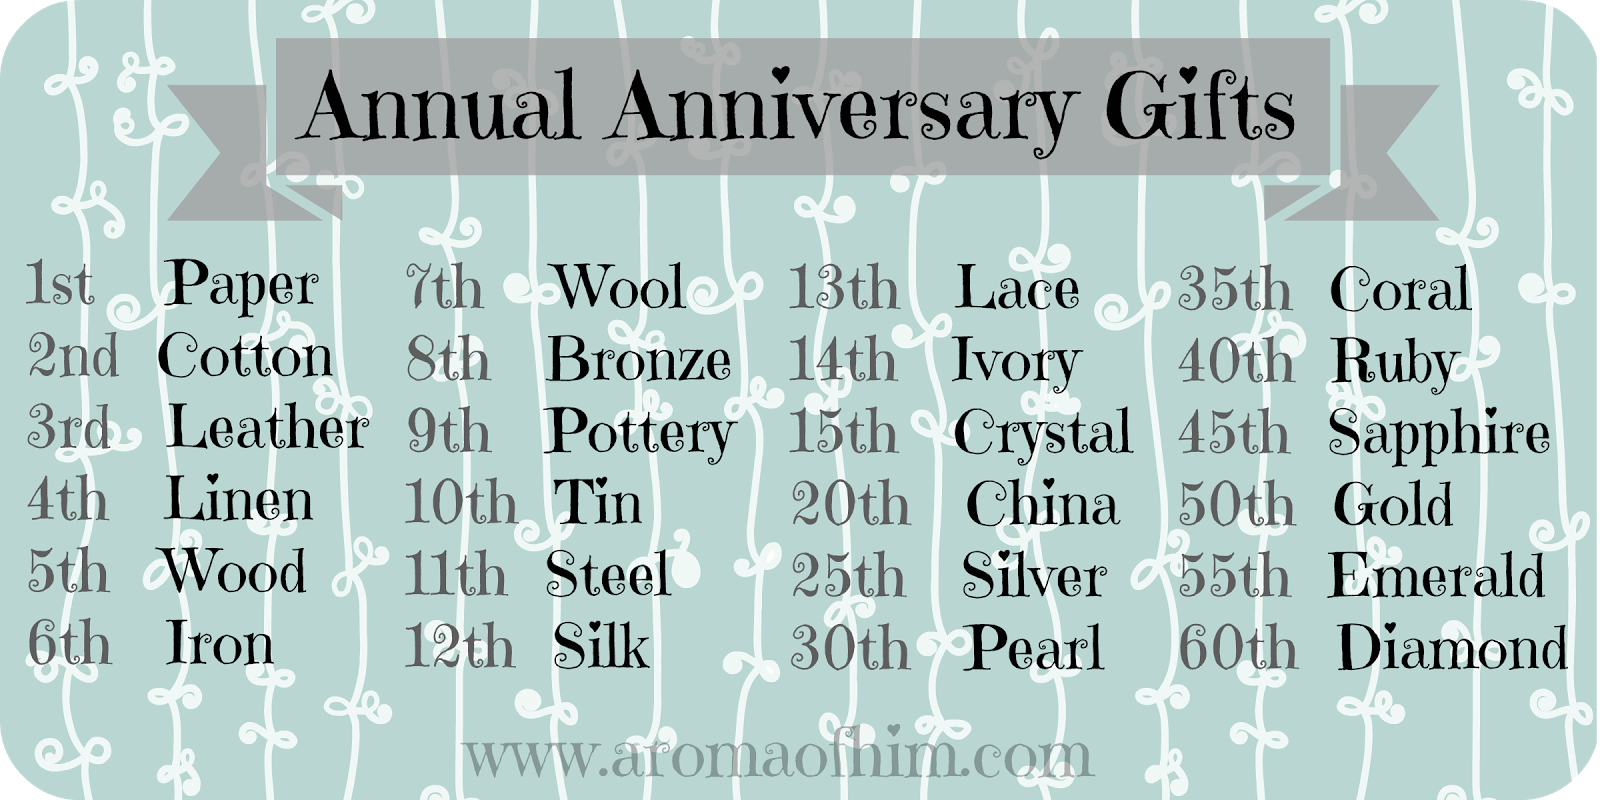 Wedding Gifts For 4 Years : Curious To Know If Anyone Uses This List Each Year I Guess I . 2 Month ...